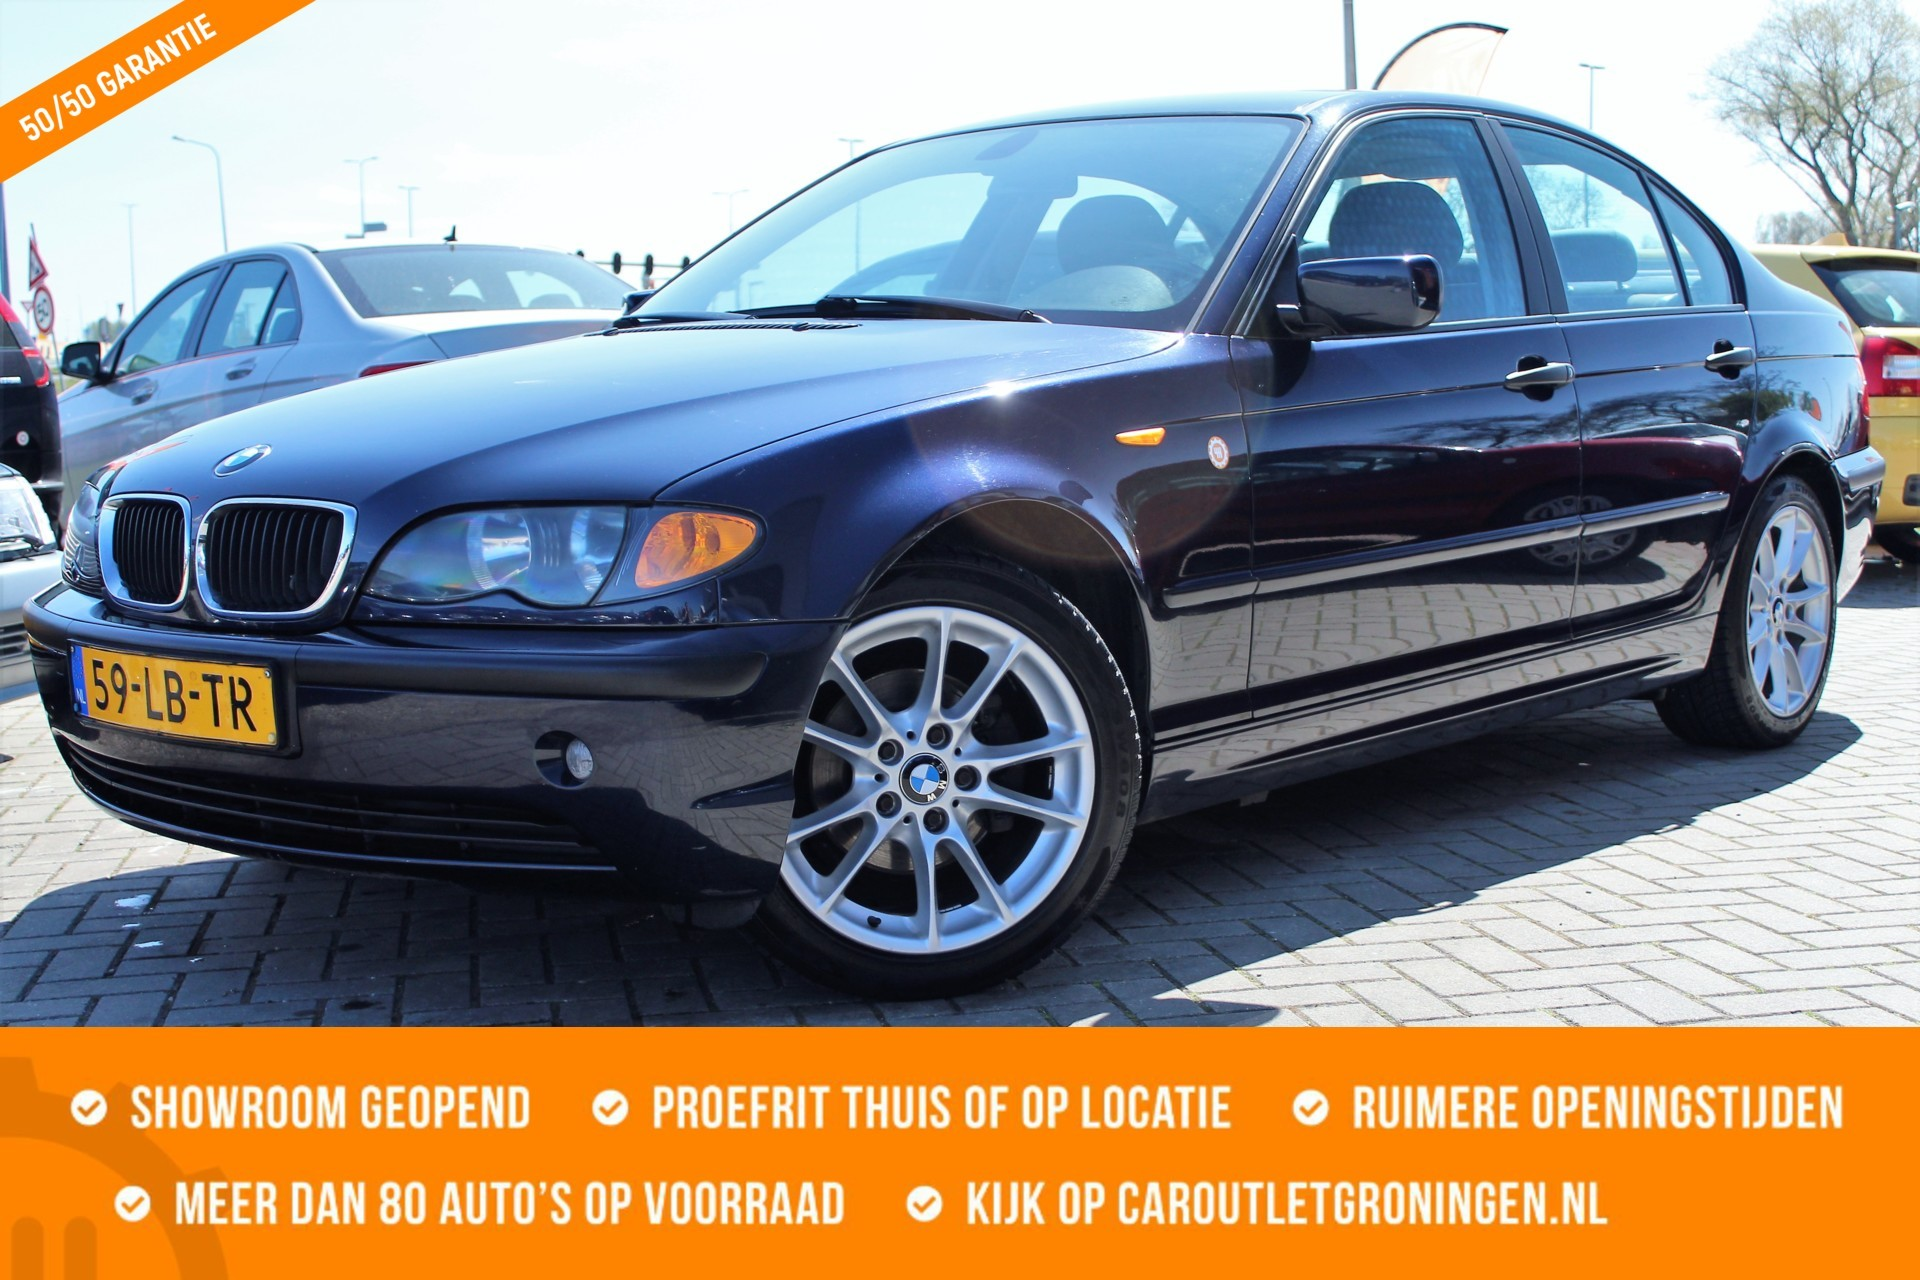 Caroutlet Groningen - BMW 3-serie 316i | AUTOMAAT | 188.000KM | CLIMA | CRUISE